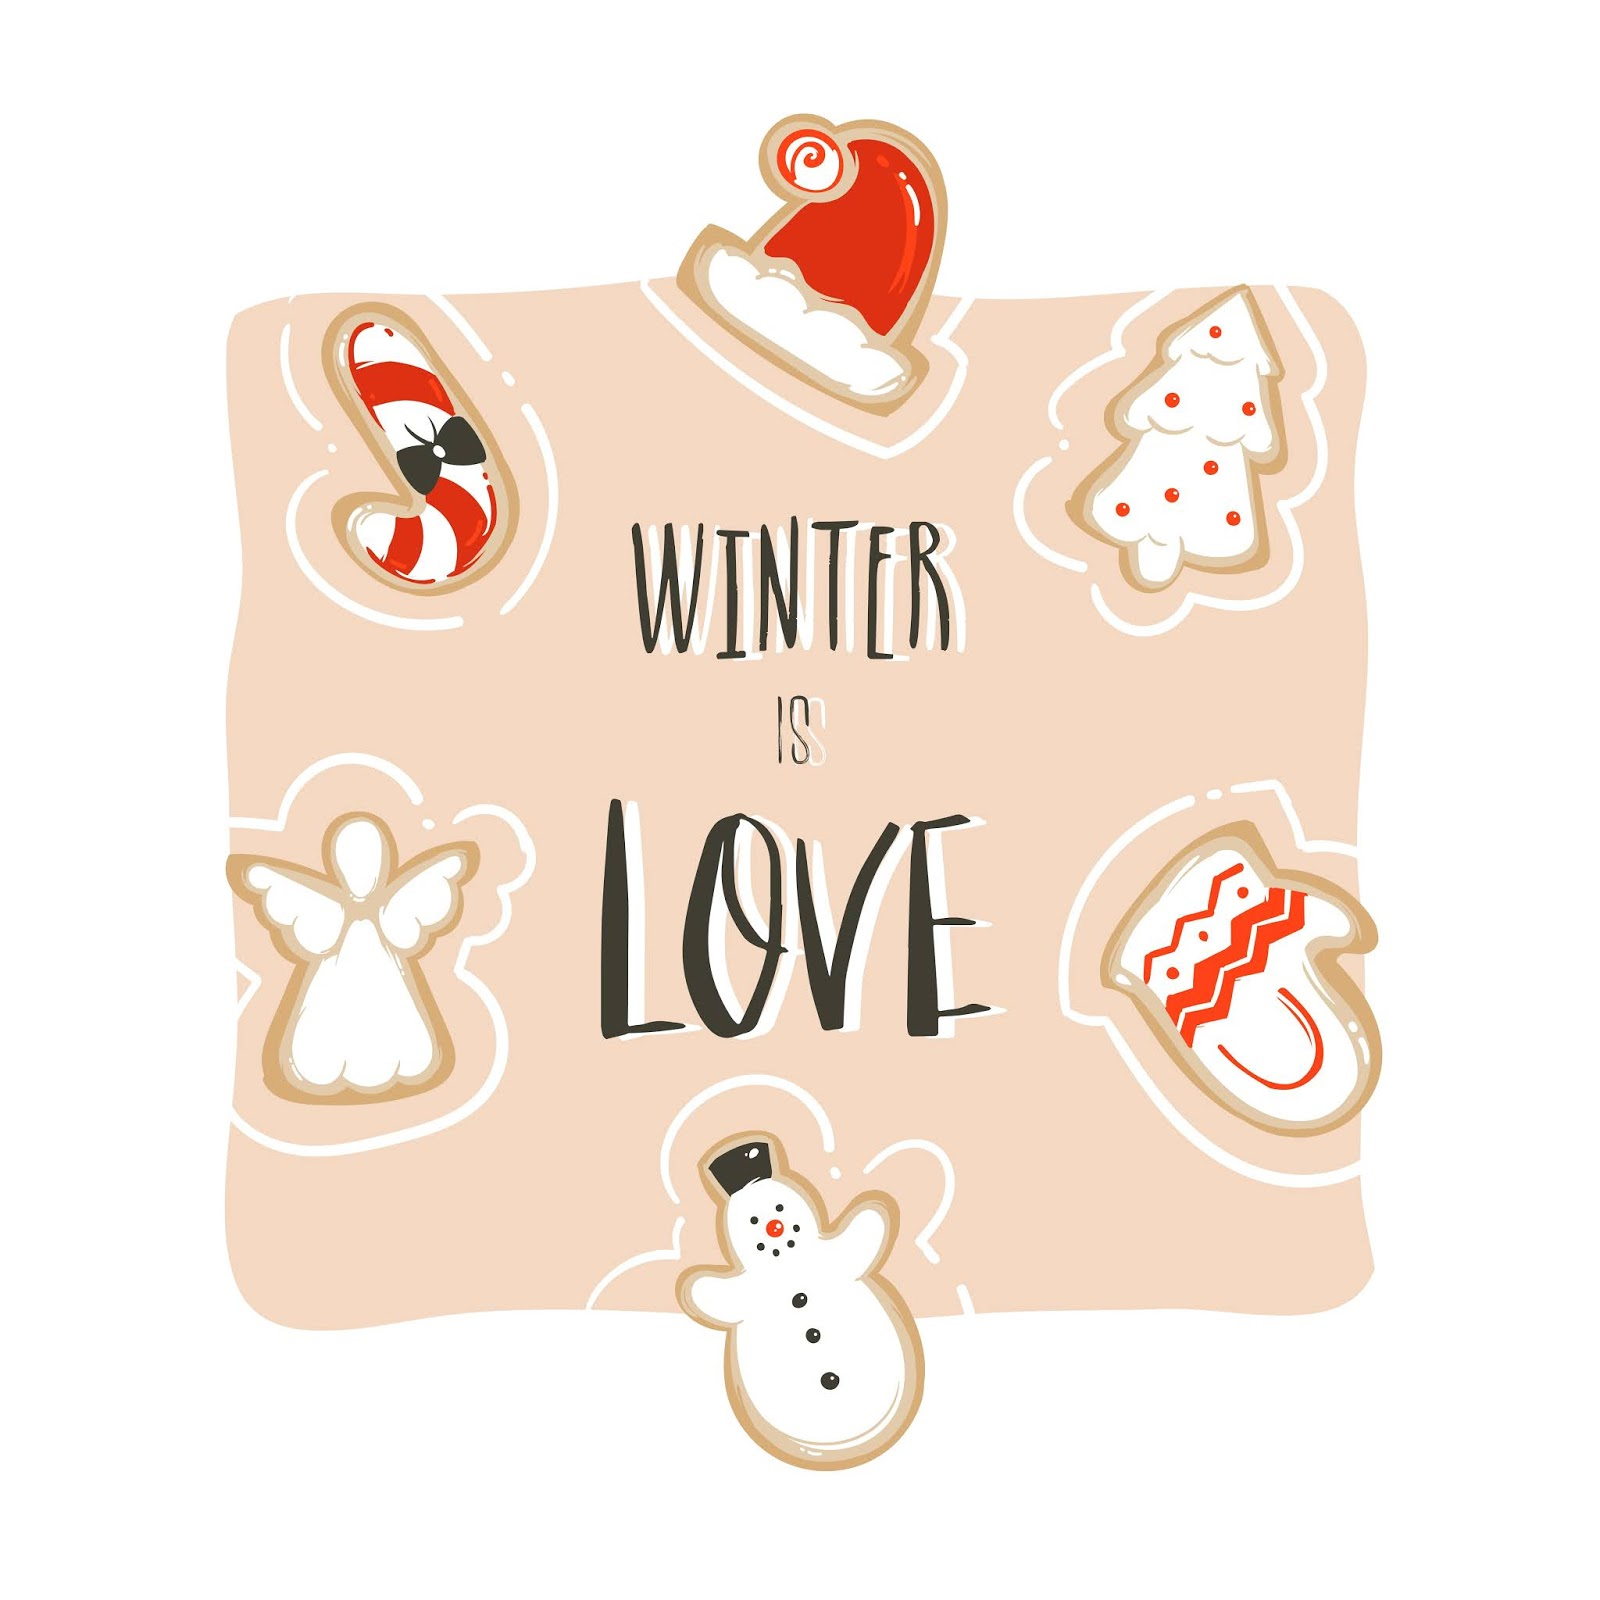 Hand Drawn Abstract Fun Merry Christmas Time Cartoon Card Template With Cute Illustrations Gingerbread Cookies Handwritten Modern Calligraphy Winter Is Love Isolated White Background Free Download Vector CDR, AI, EPS and PNG Formats